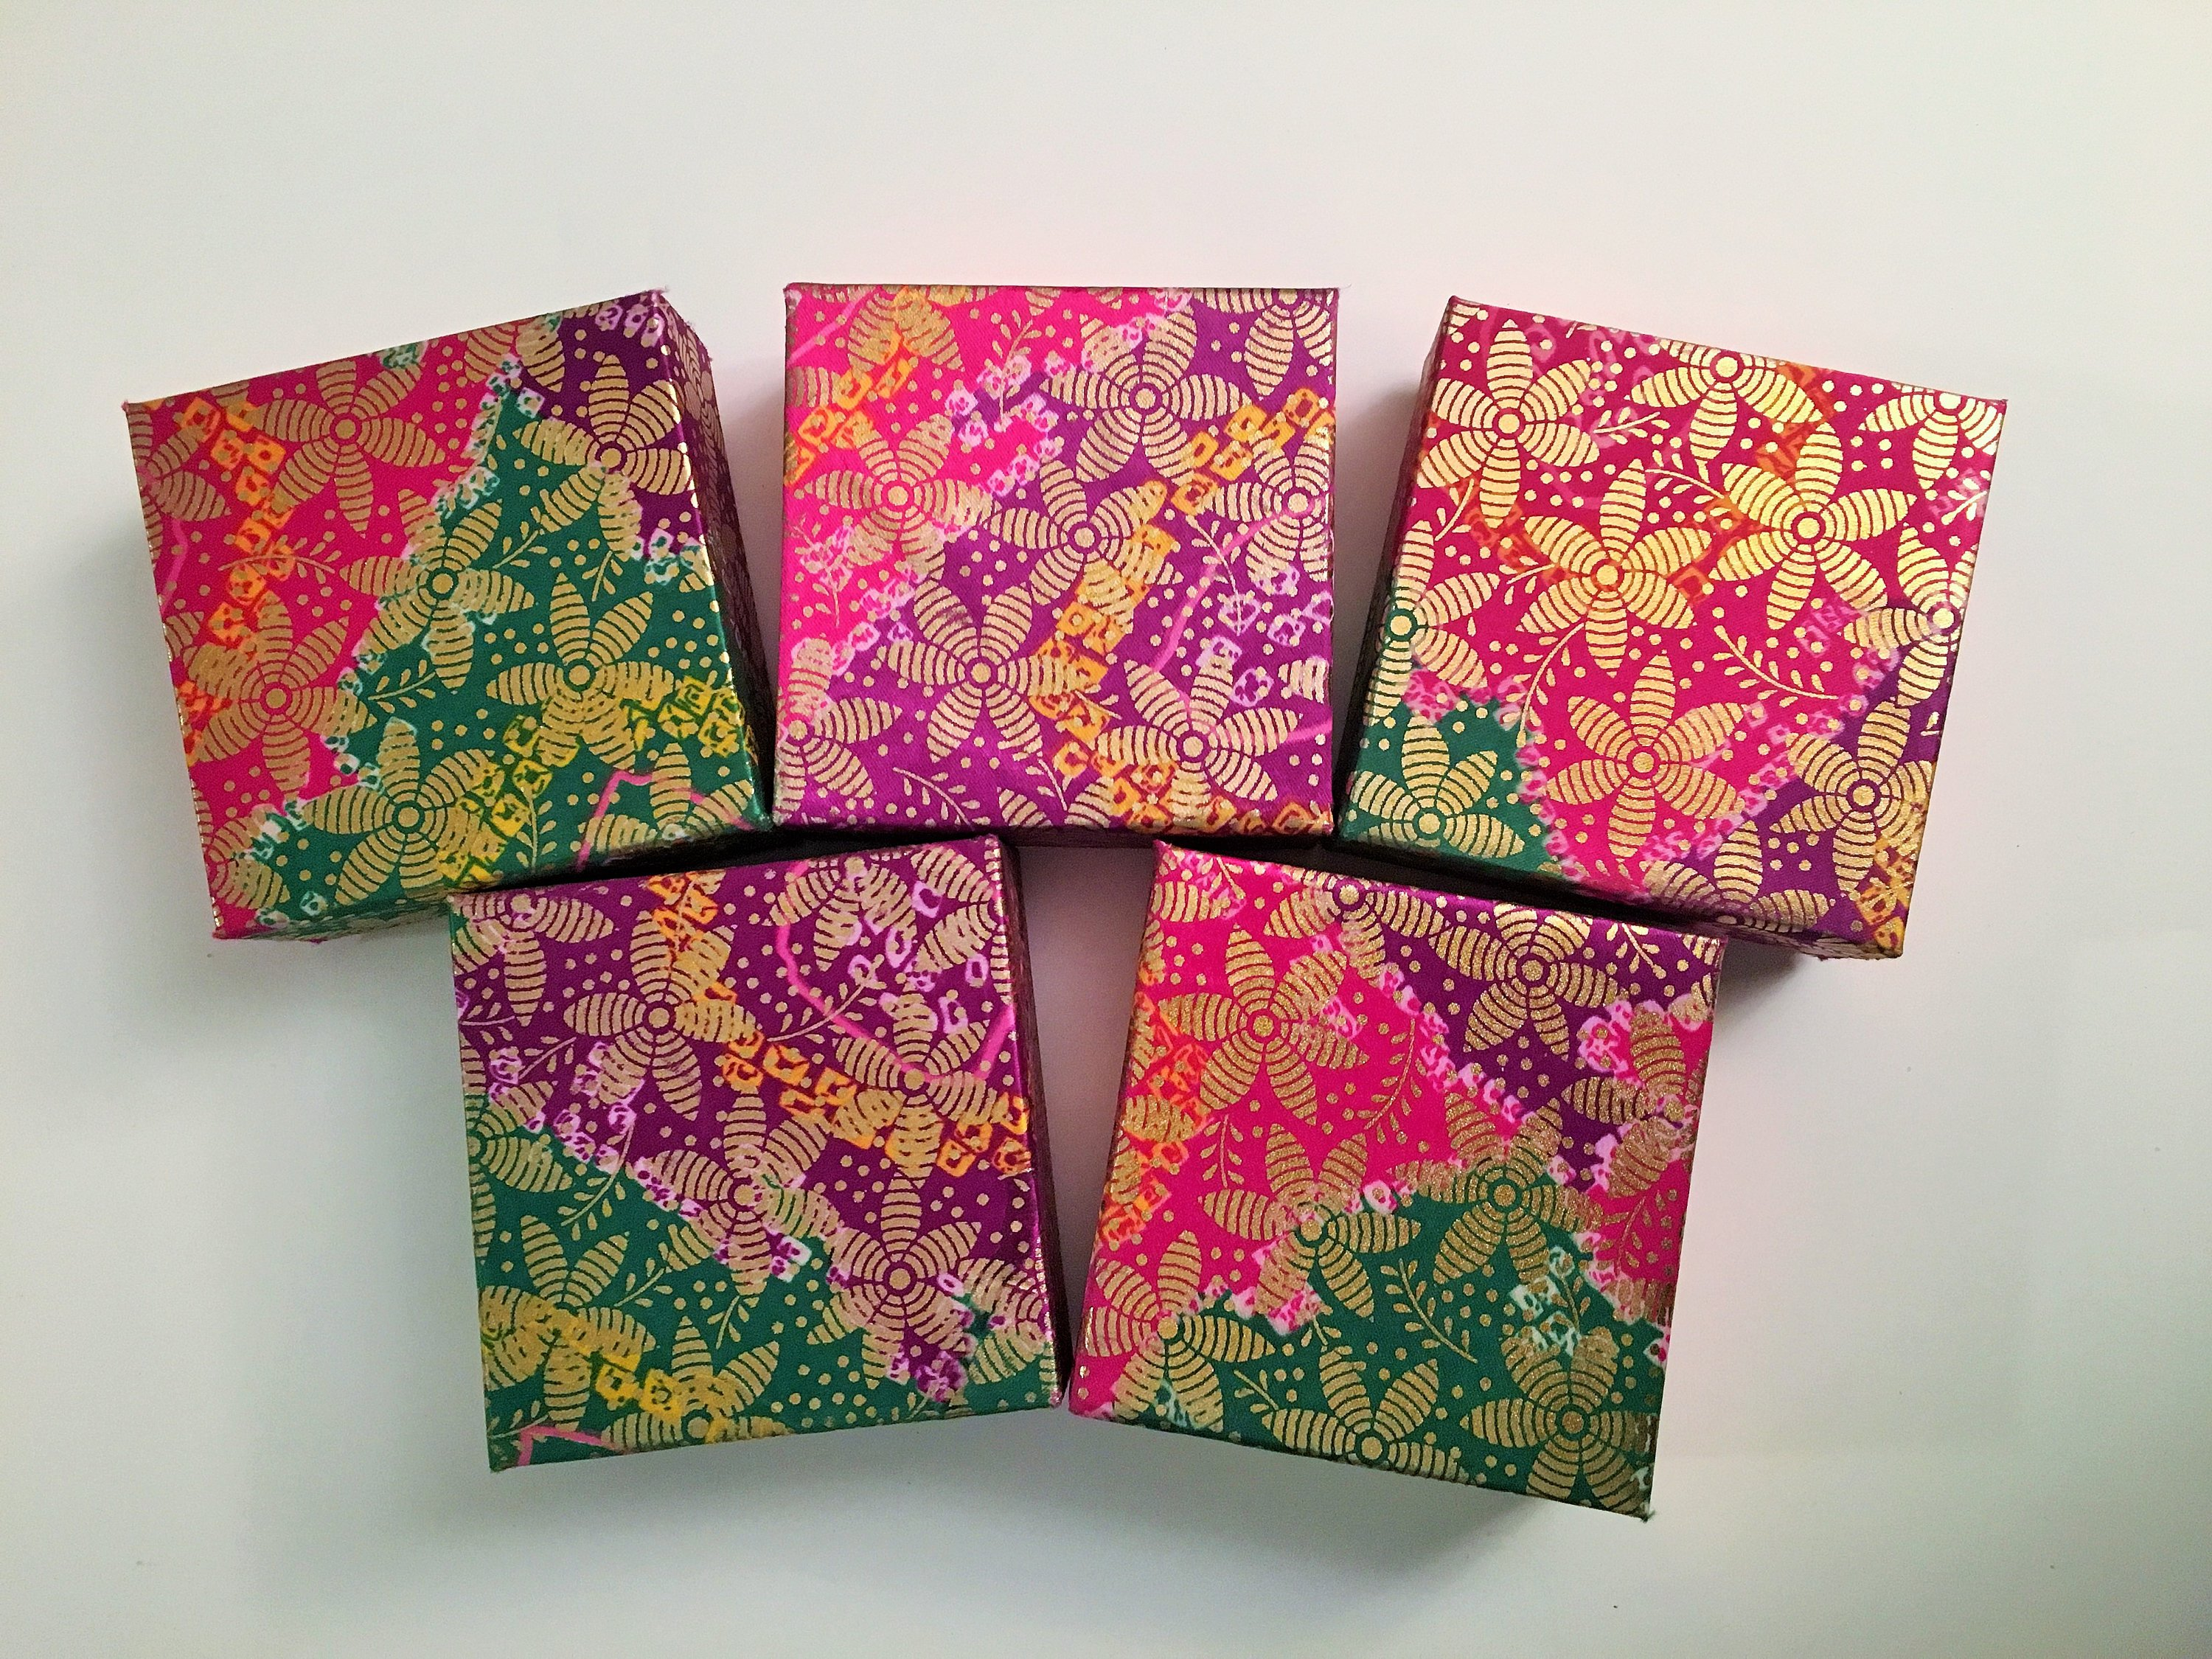 5 SMALL GIFT BOXES, 4x4, Christmas Gift by handmadetraditions on